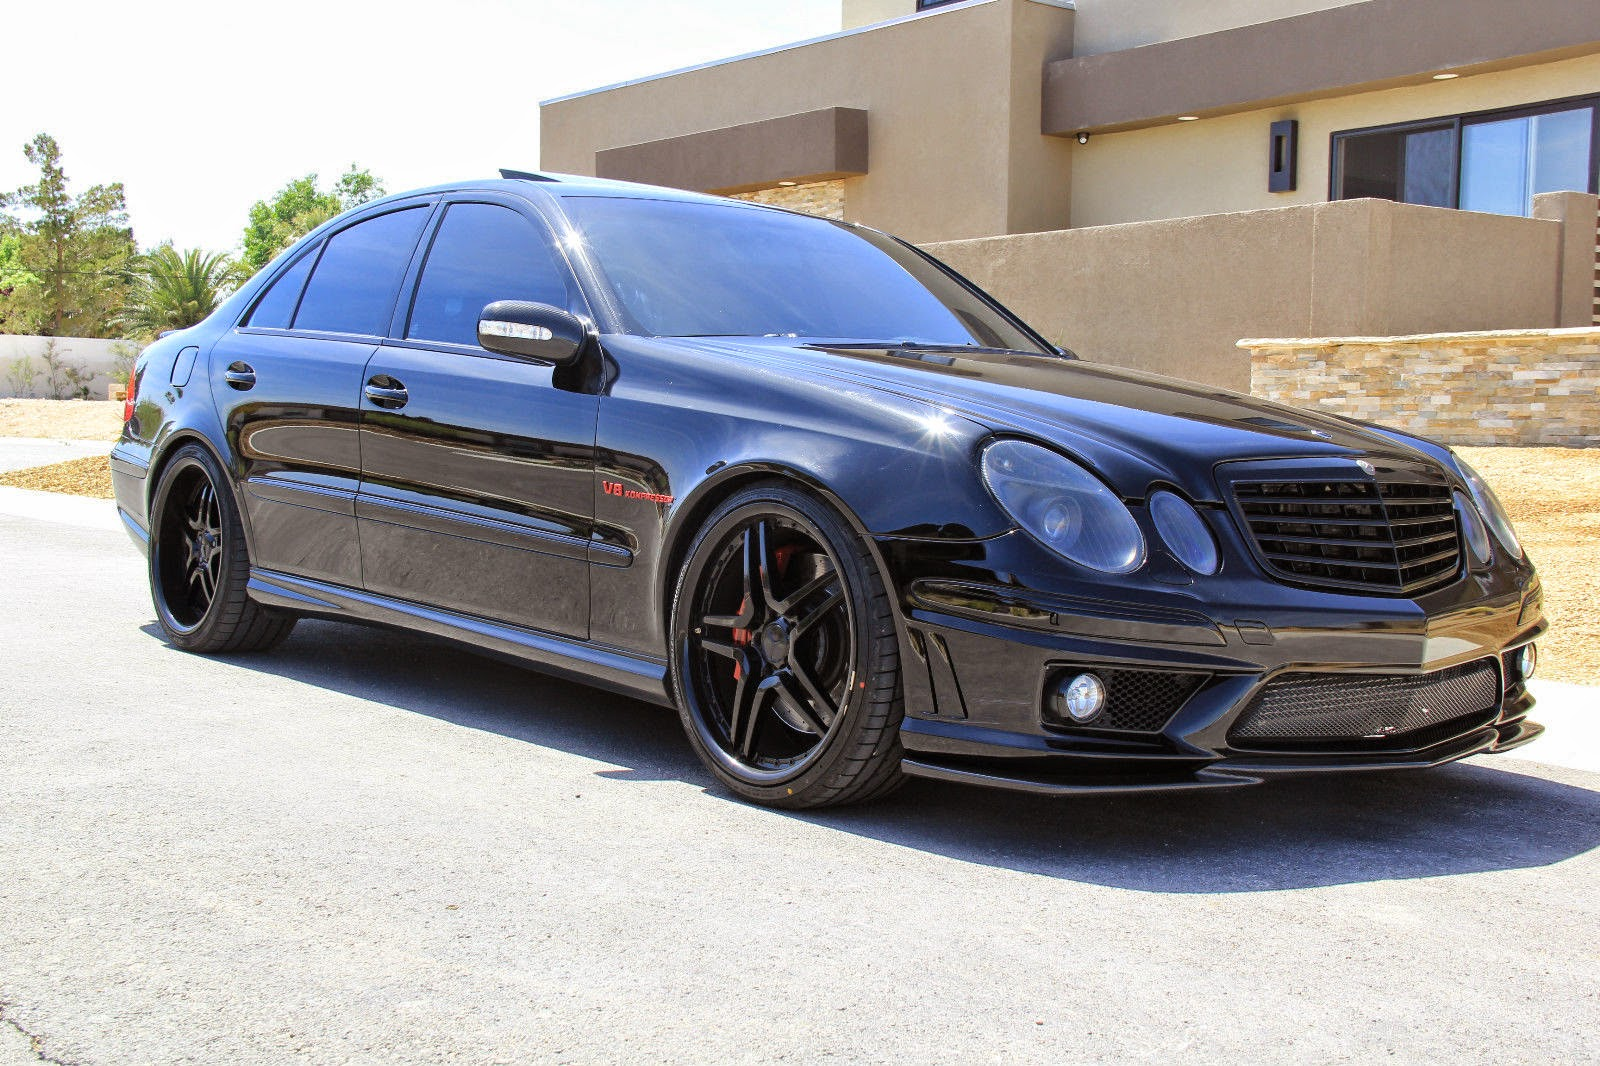 Fantasy garage mercedes amg c36 c55 c63 c63s e55 e63 e63s for Mercedes benz amg 6 3